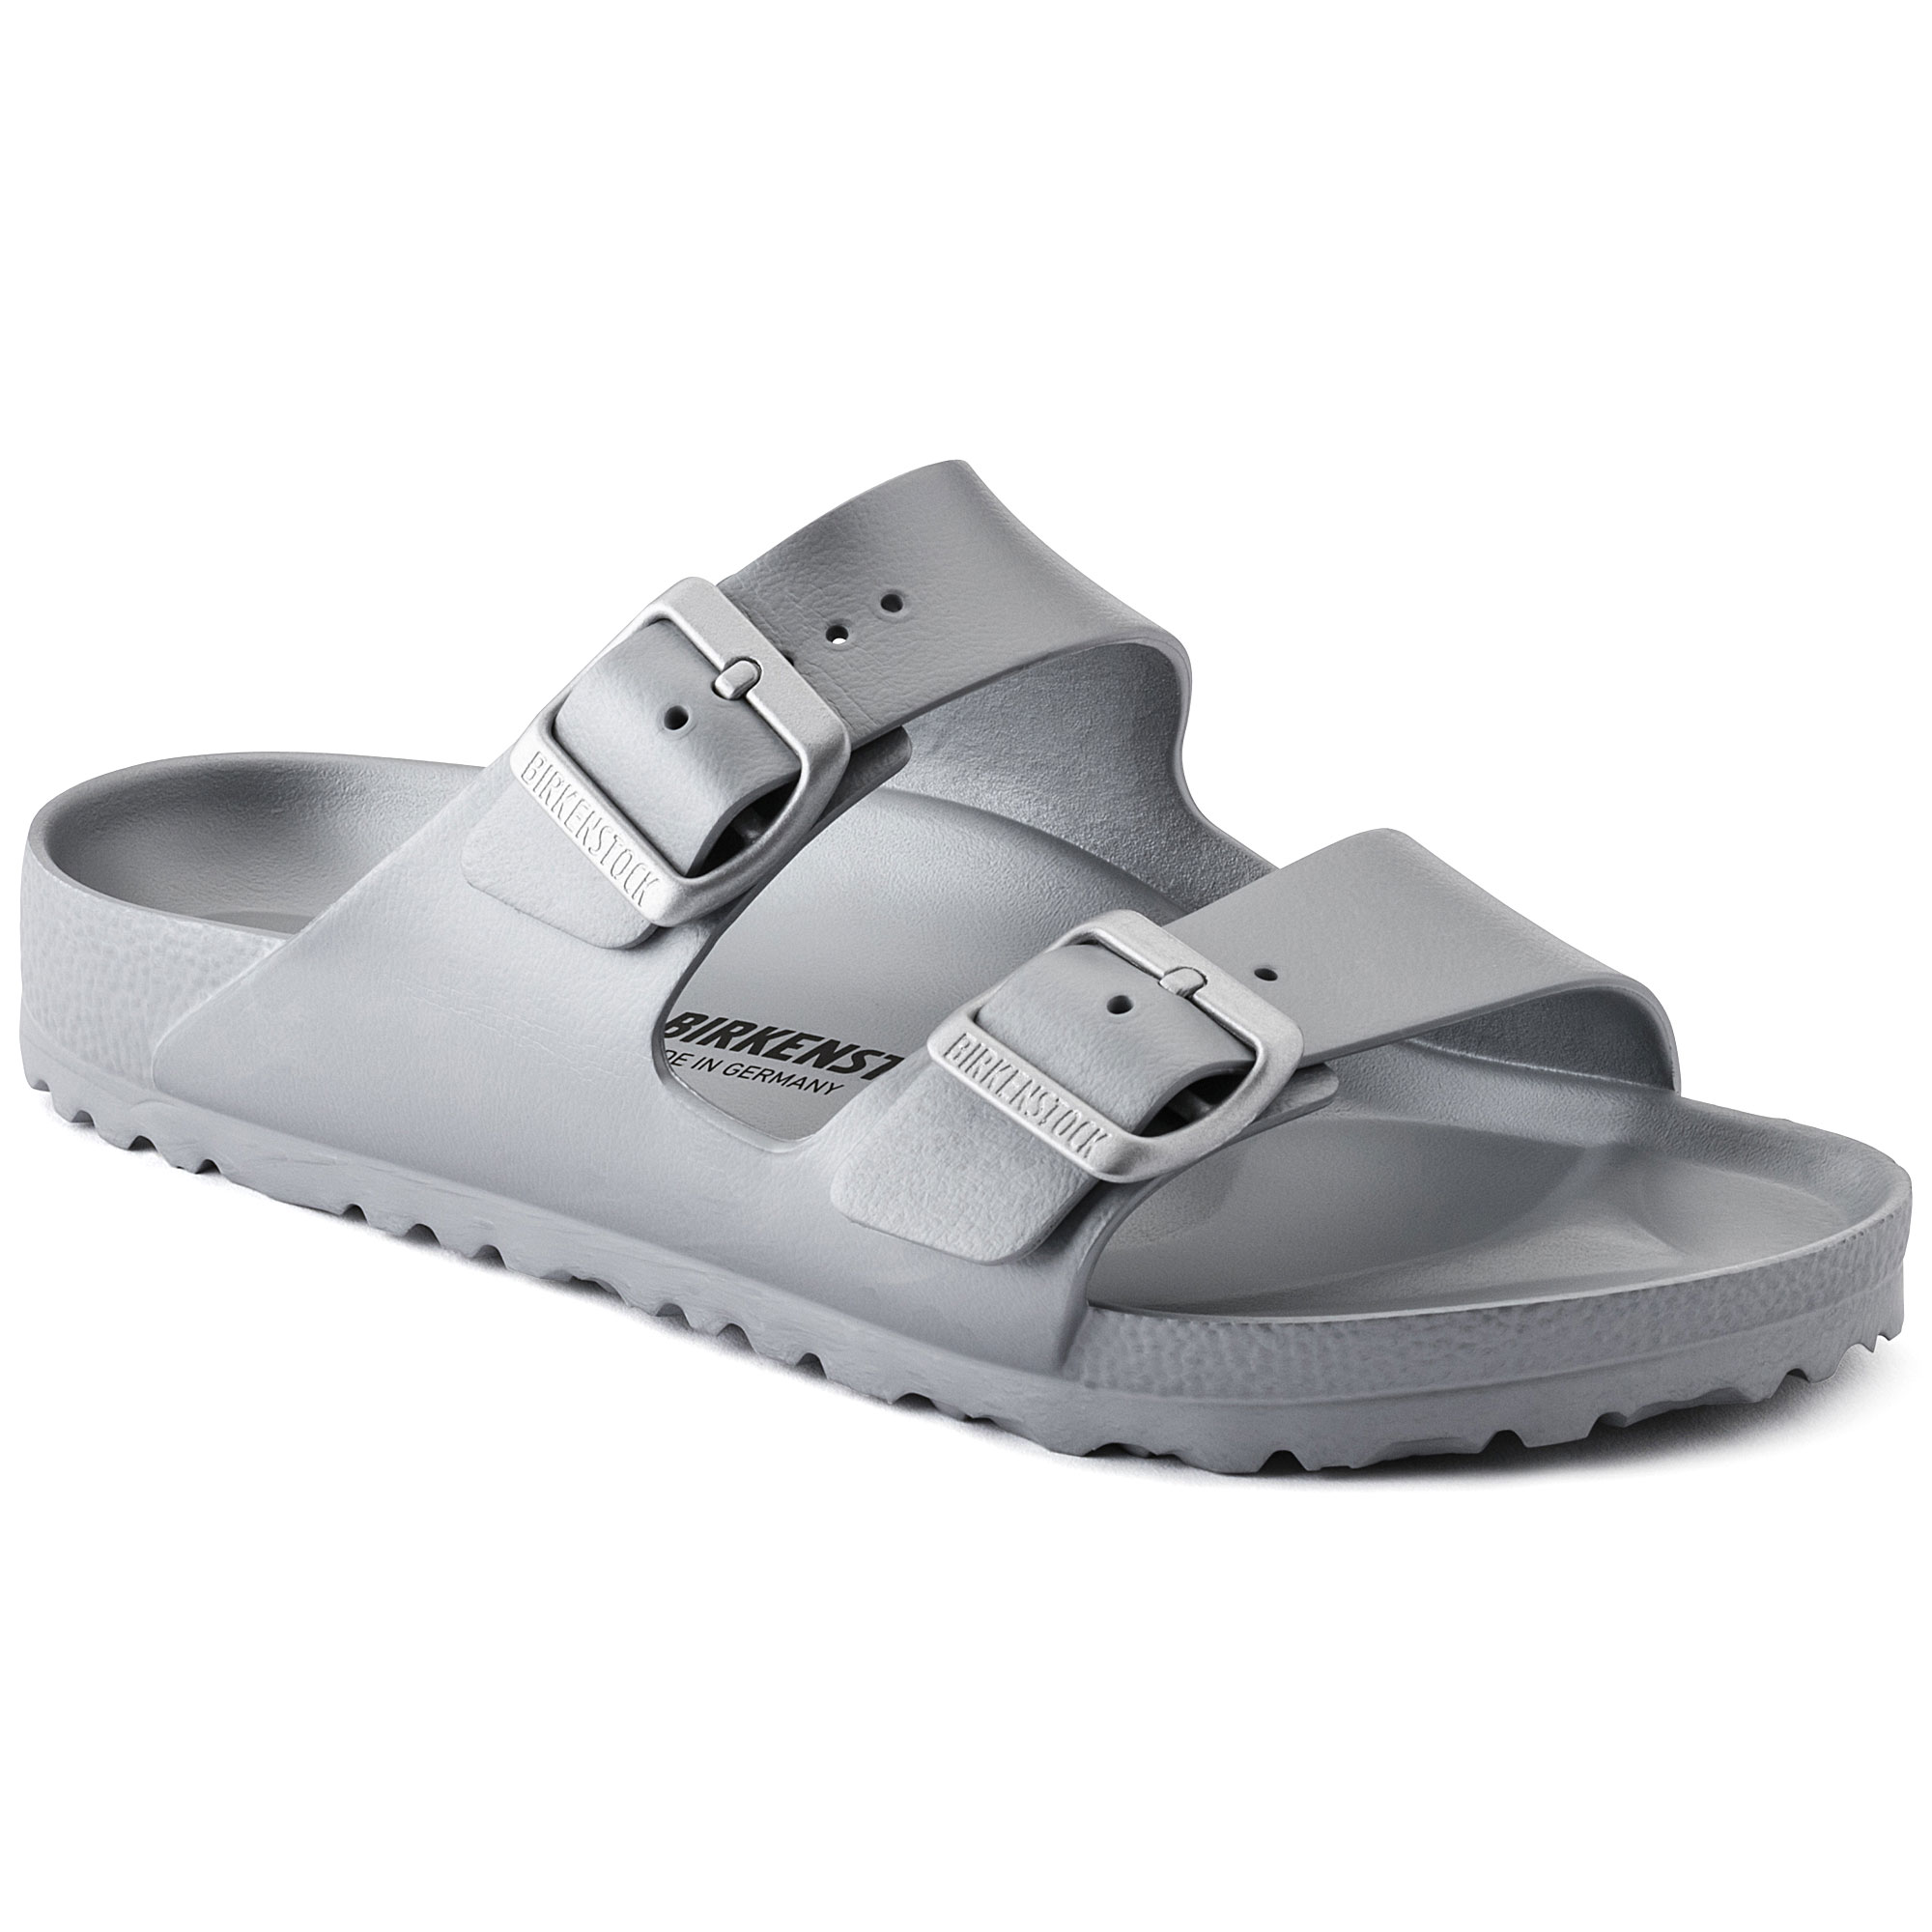 061df35d70fd7 Arizona EVA Metallic Silver | shop online at BIRKENSTOCK